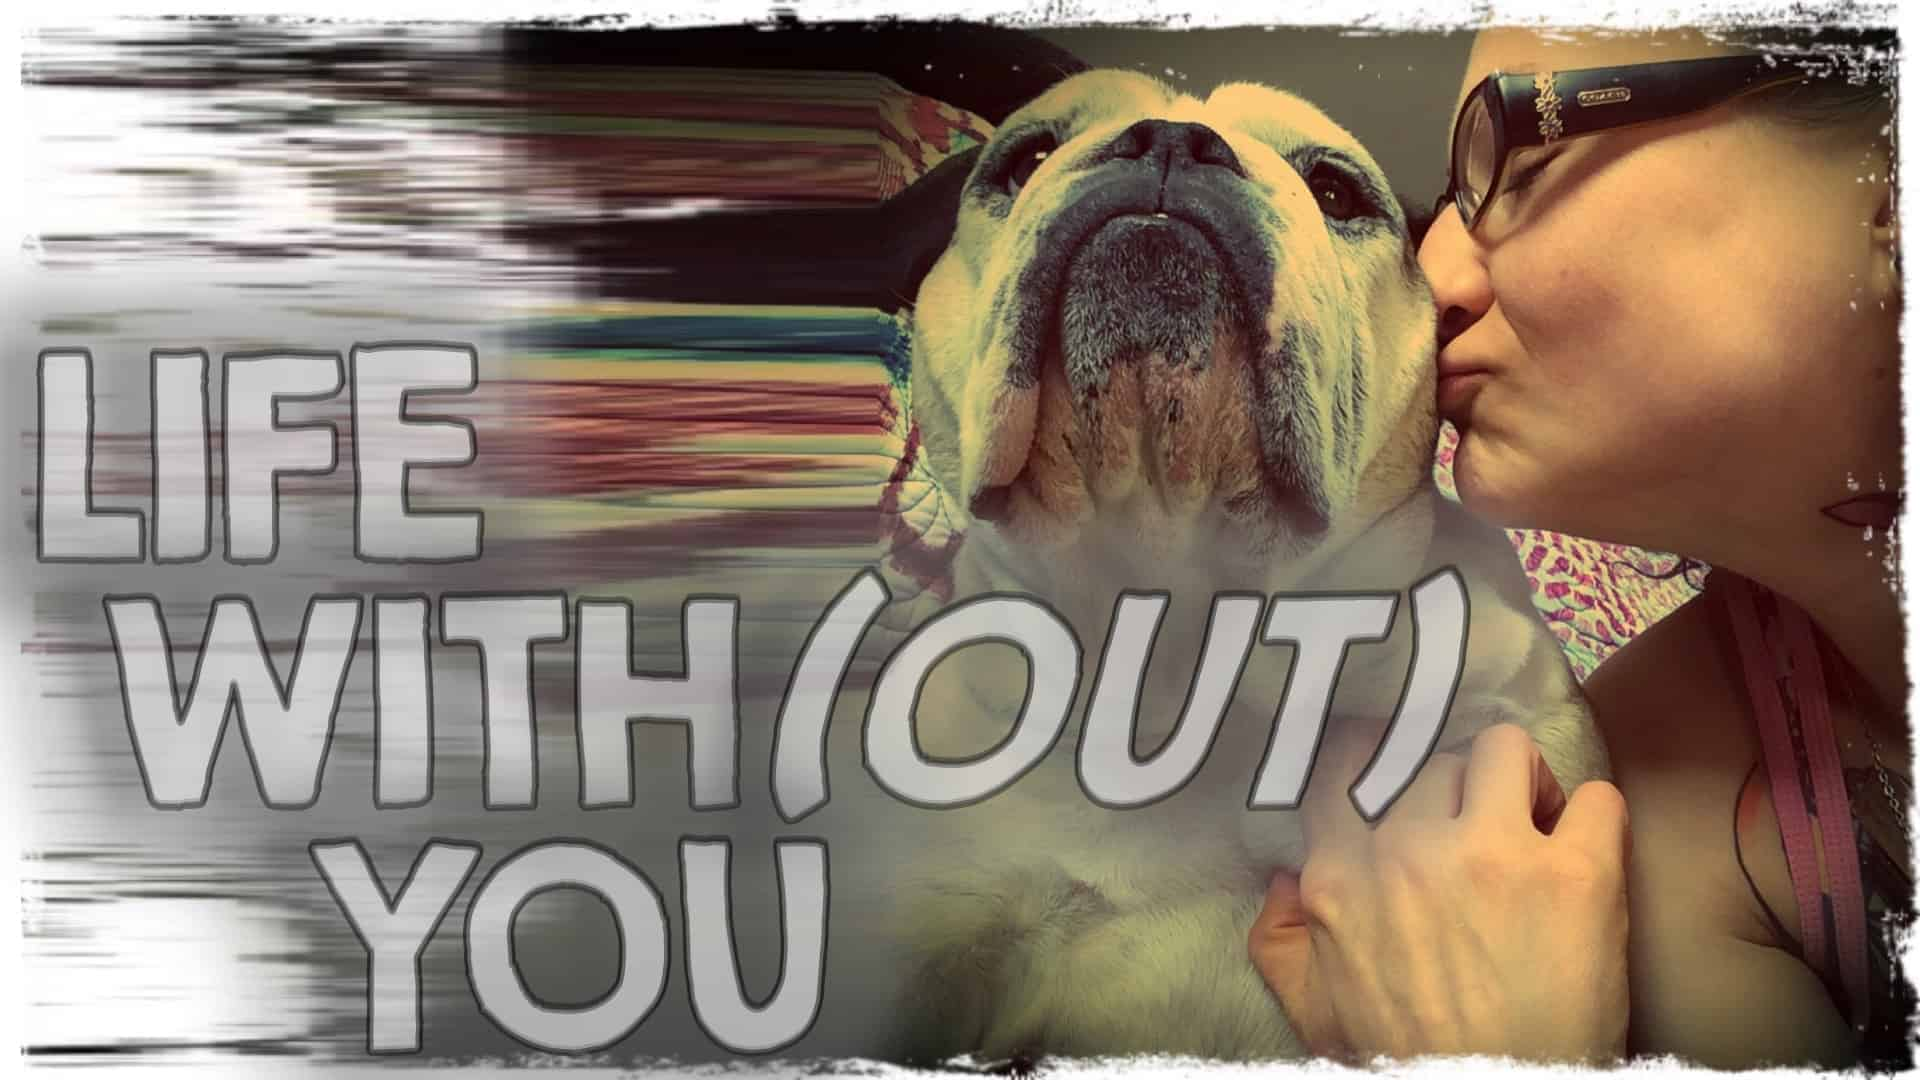 """Emily Moran Barwick of Bite Size Vegan is shown in close-up kissing her beloved Ooby. Overlaying the image are the words """"Life with(out) you""""."""